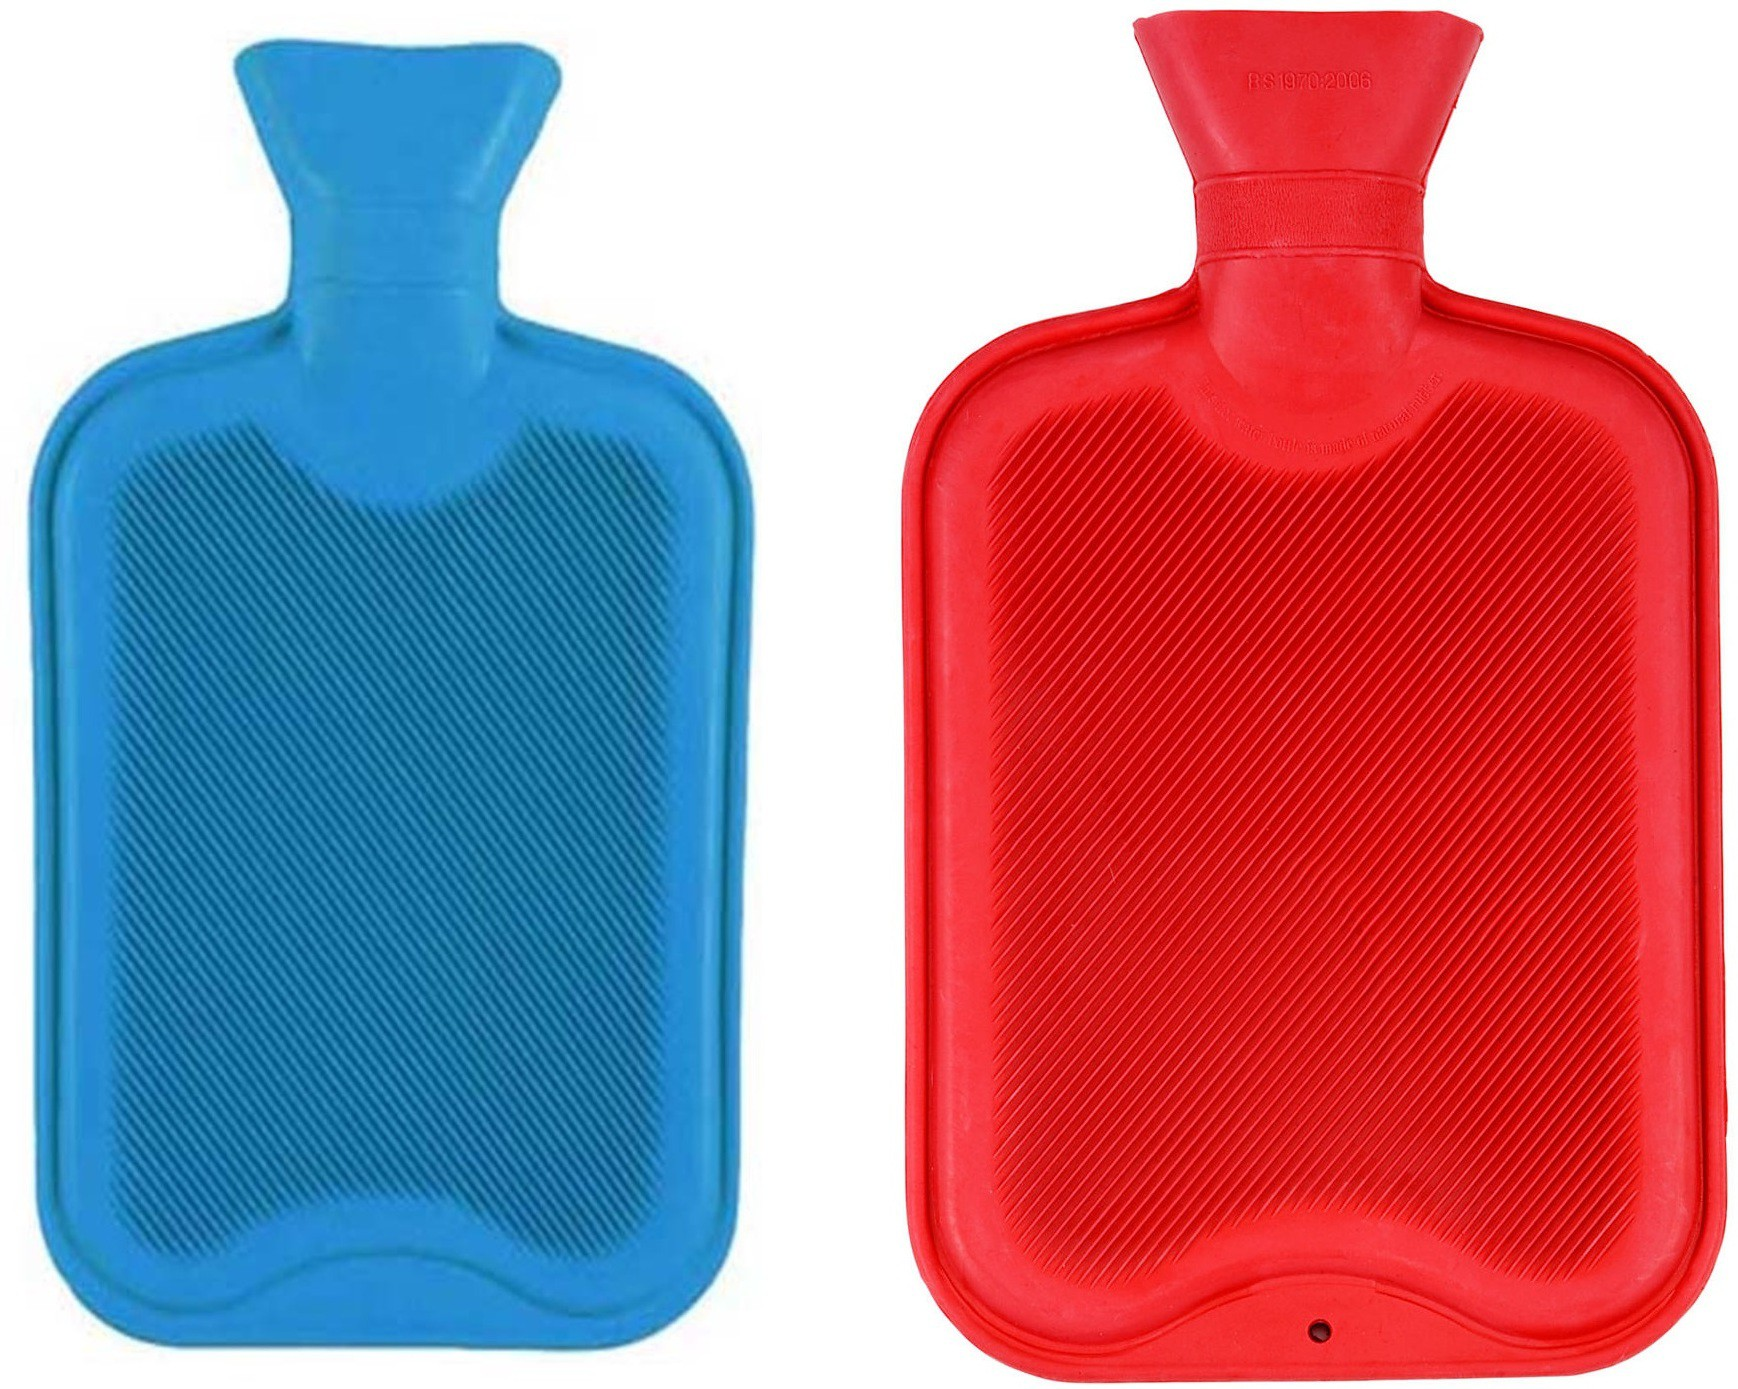 Sphiron Deluxe Combos Hot Bag Non-electrical 1.5 L Hot Water Bag(Blue, Red)